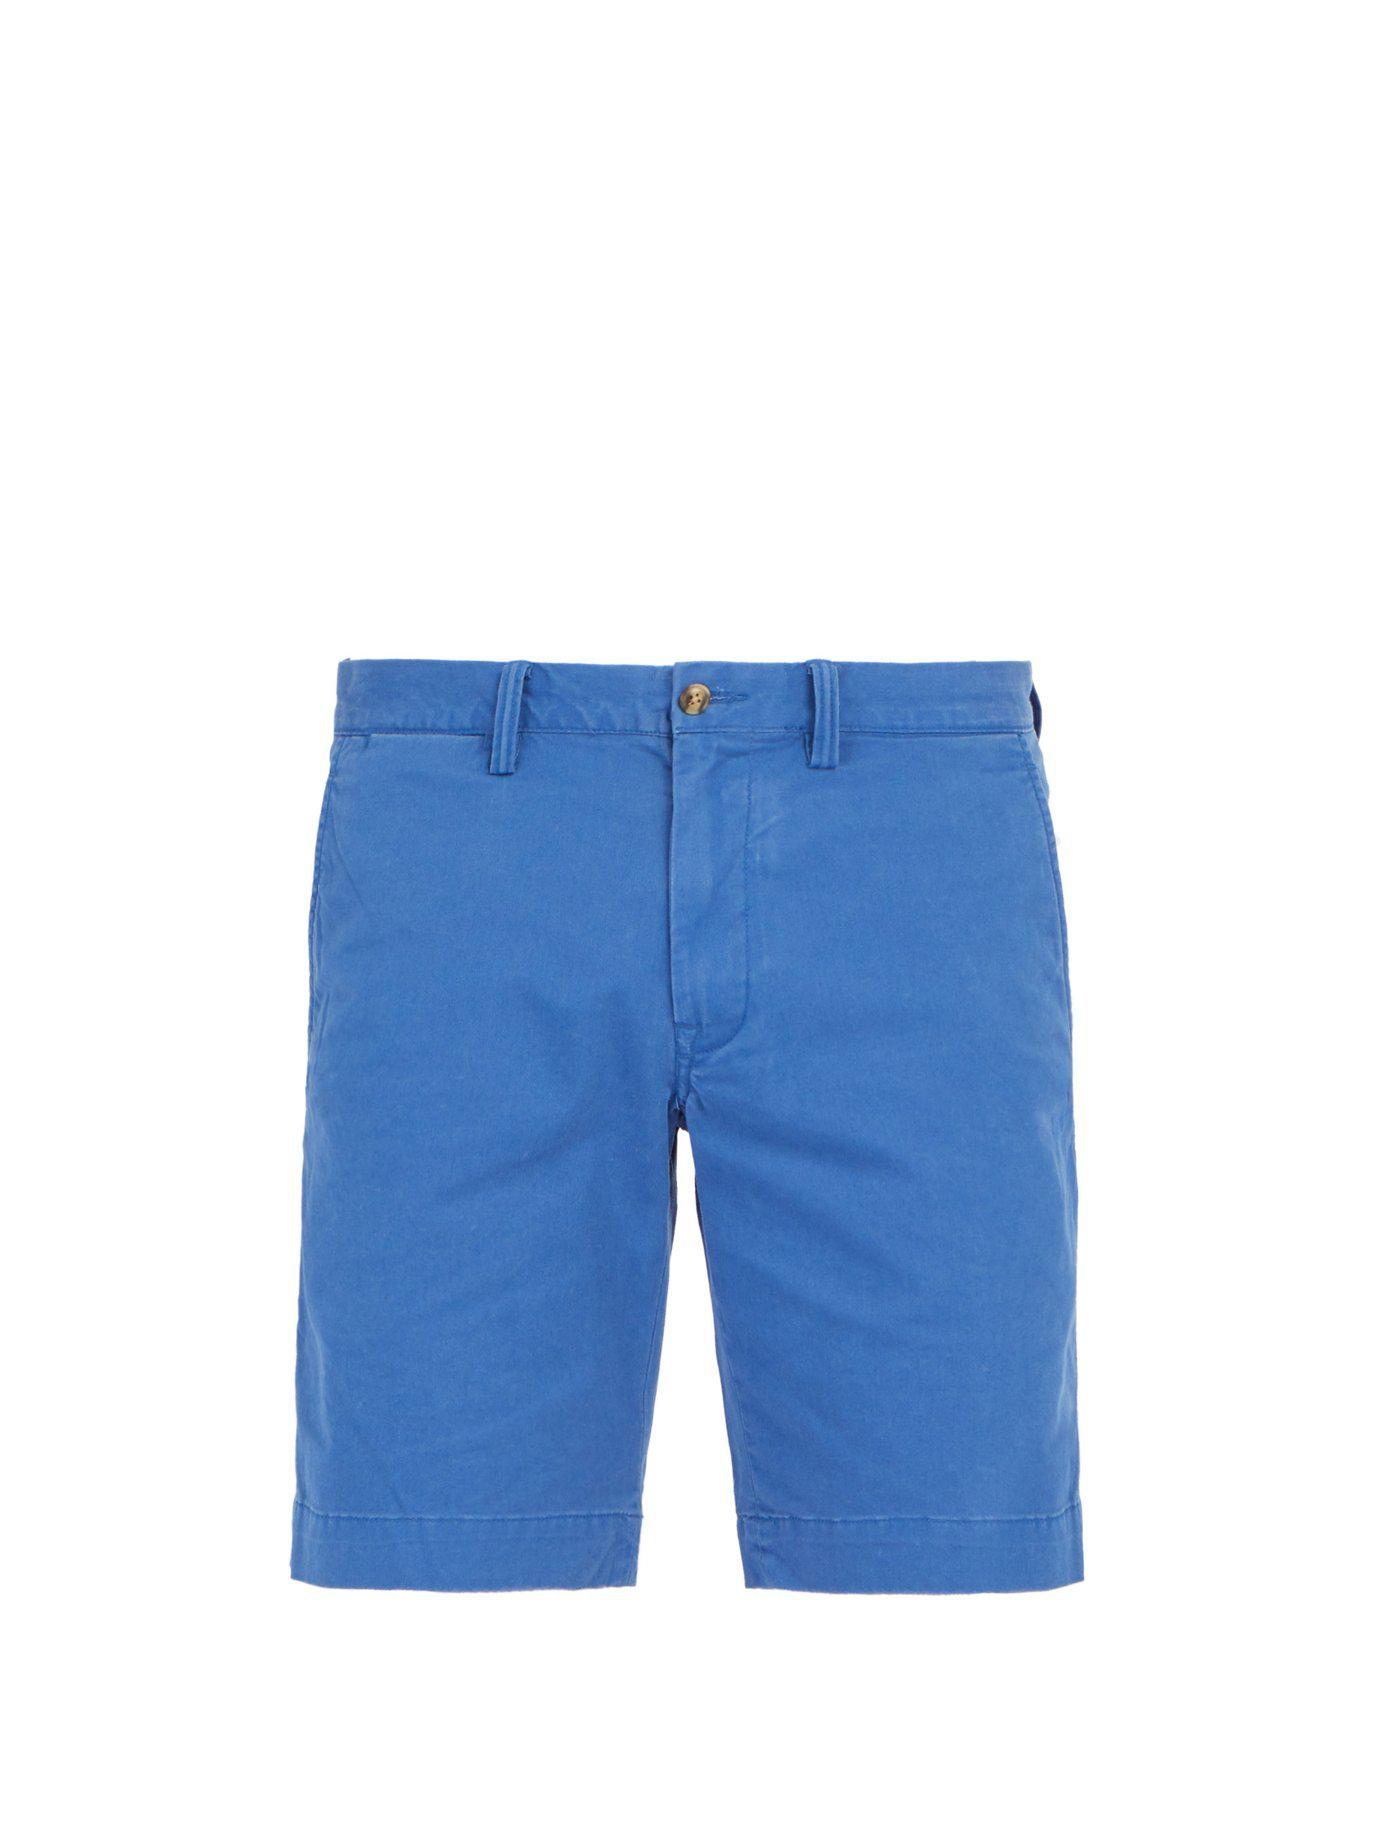 44057e0d0 Lyst - Polo Ralph Lauren Tailored Cotton Blend Chino Shorts in Blue ...